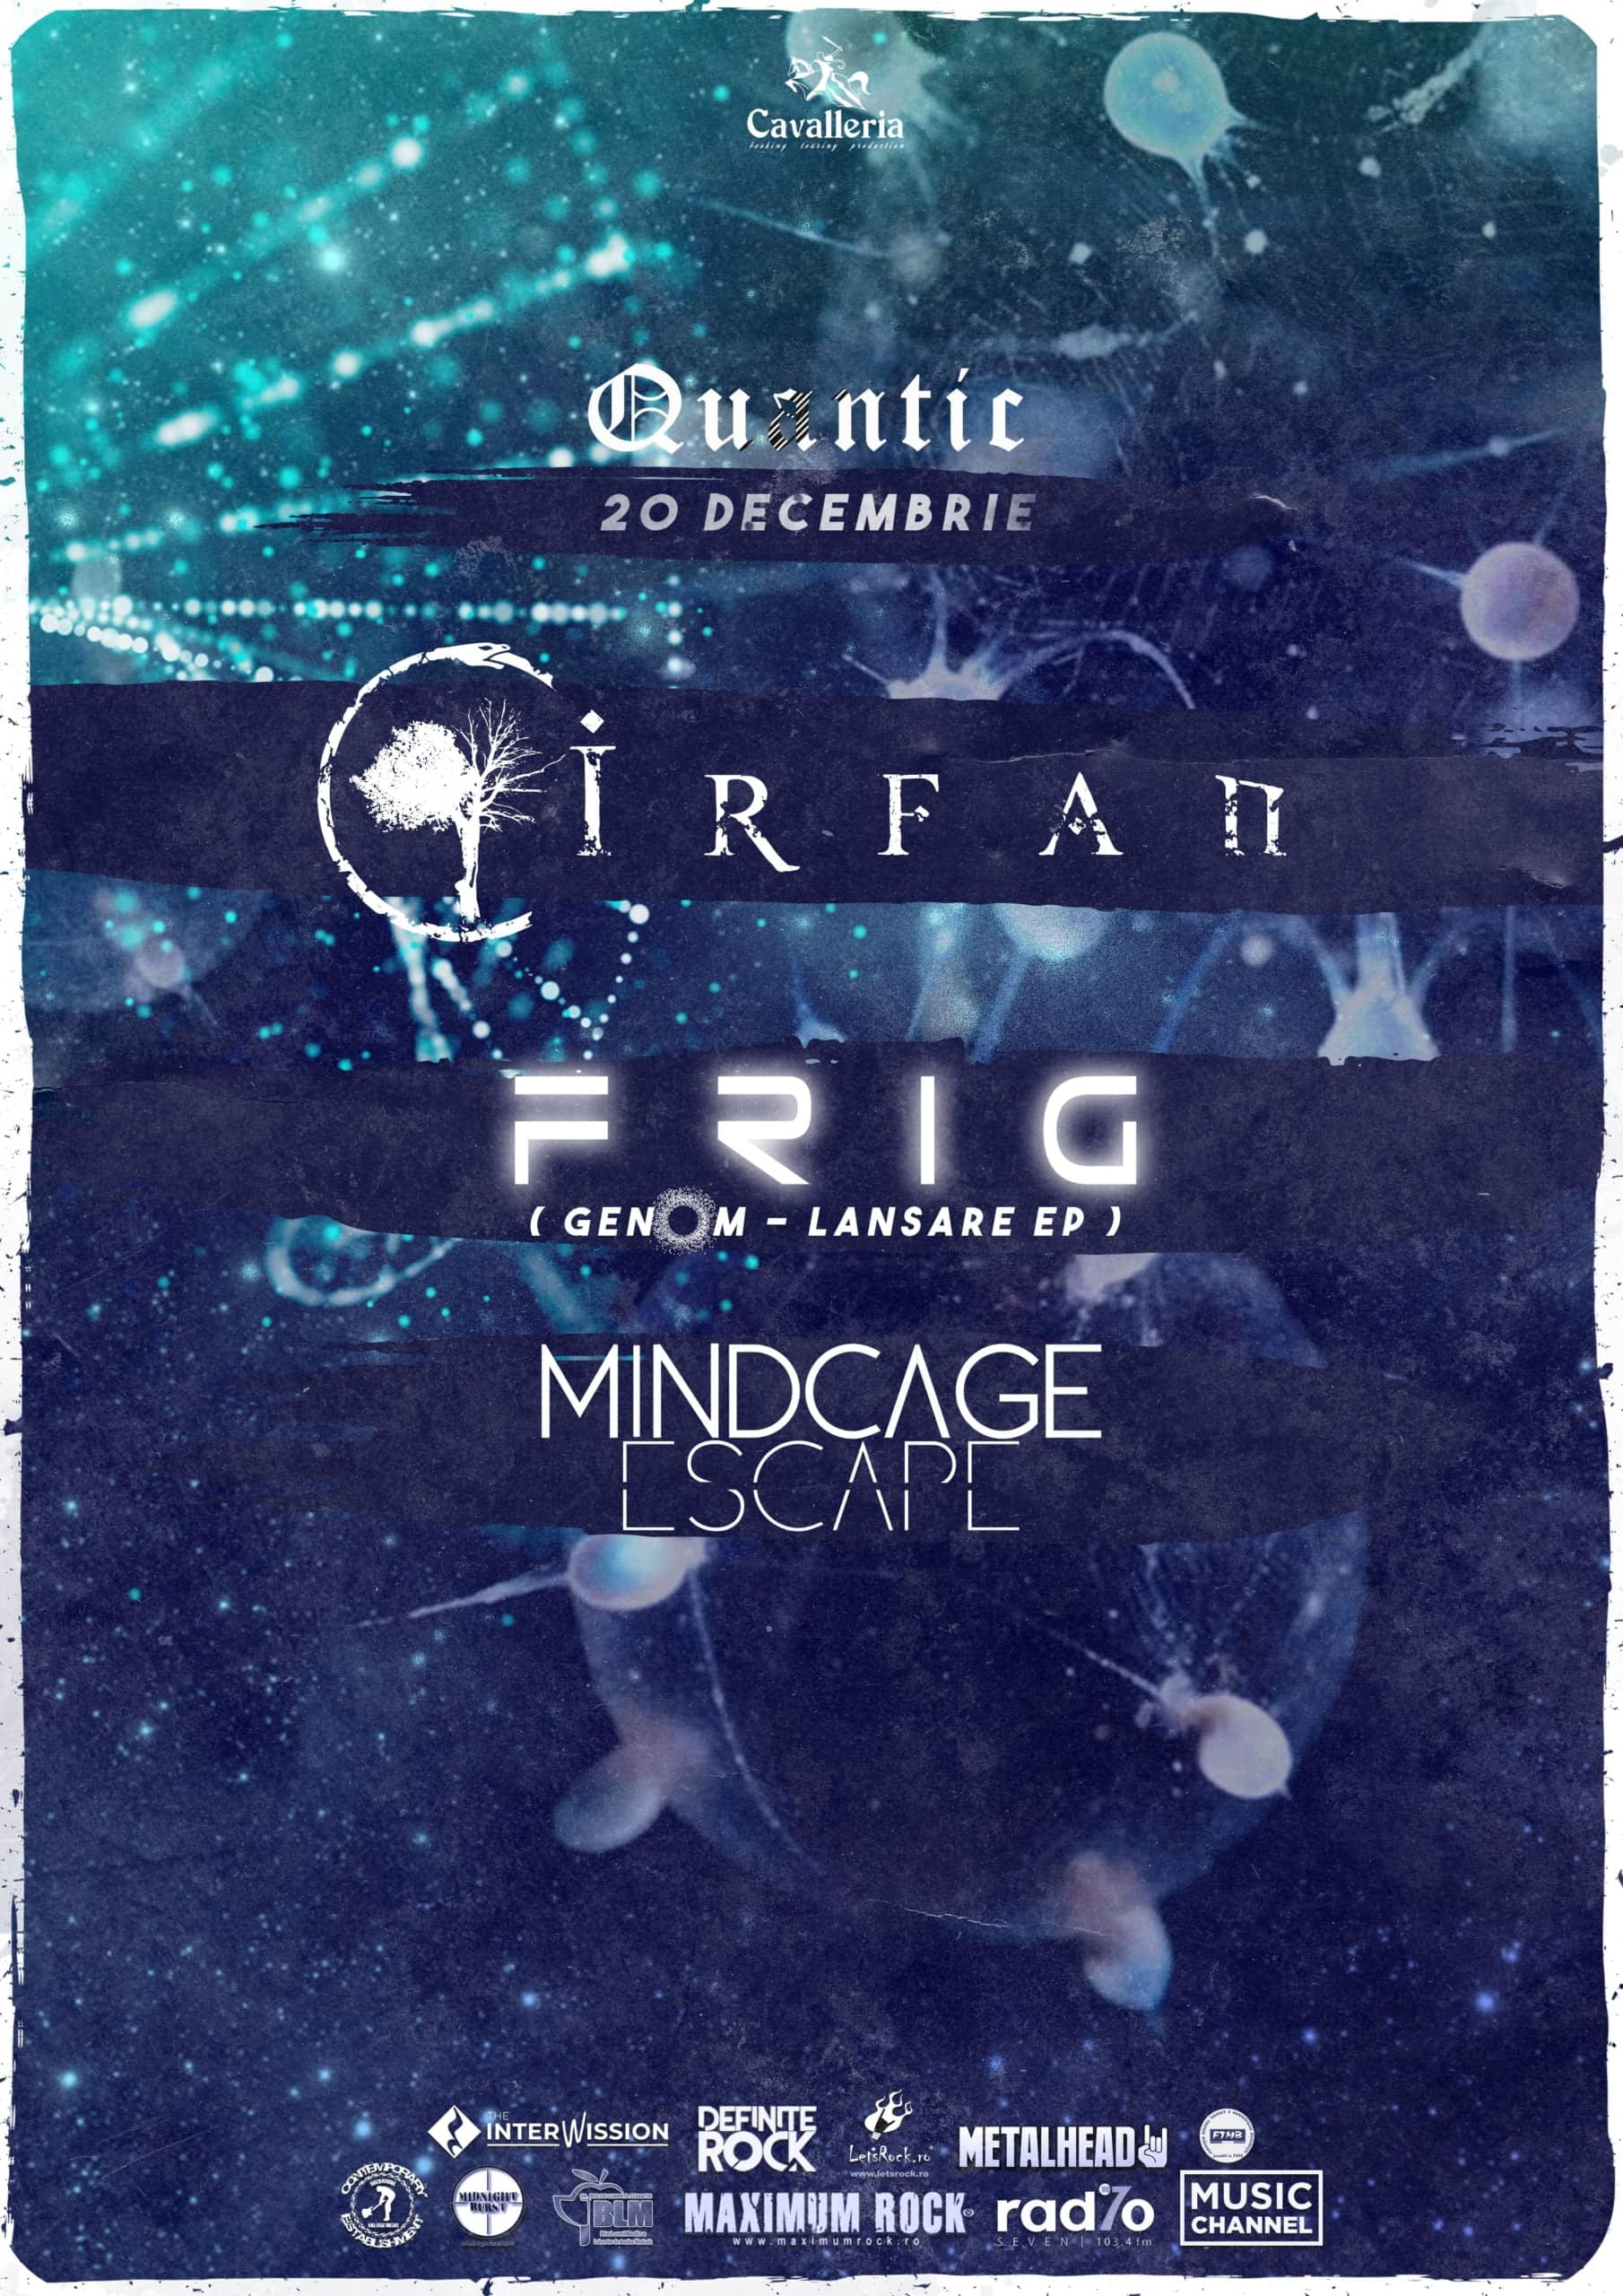 Astral Night: Irfan, Frig si Mindcage Escape in Quantic Club